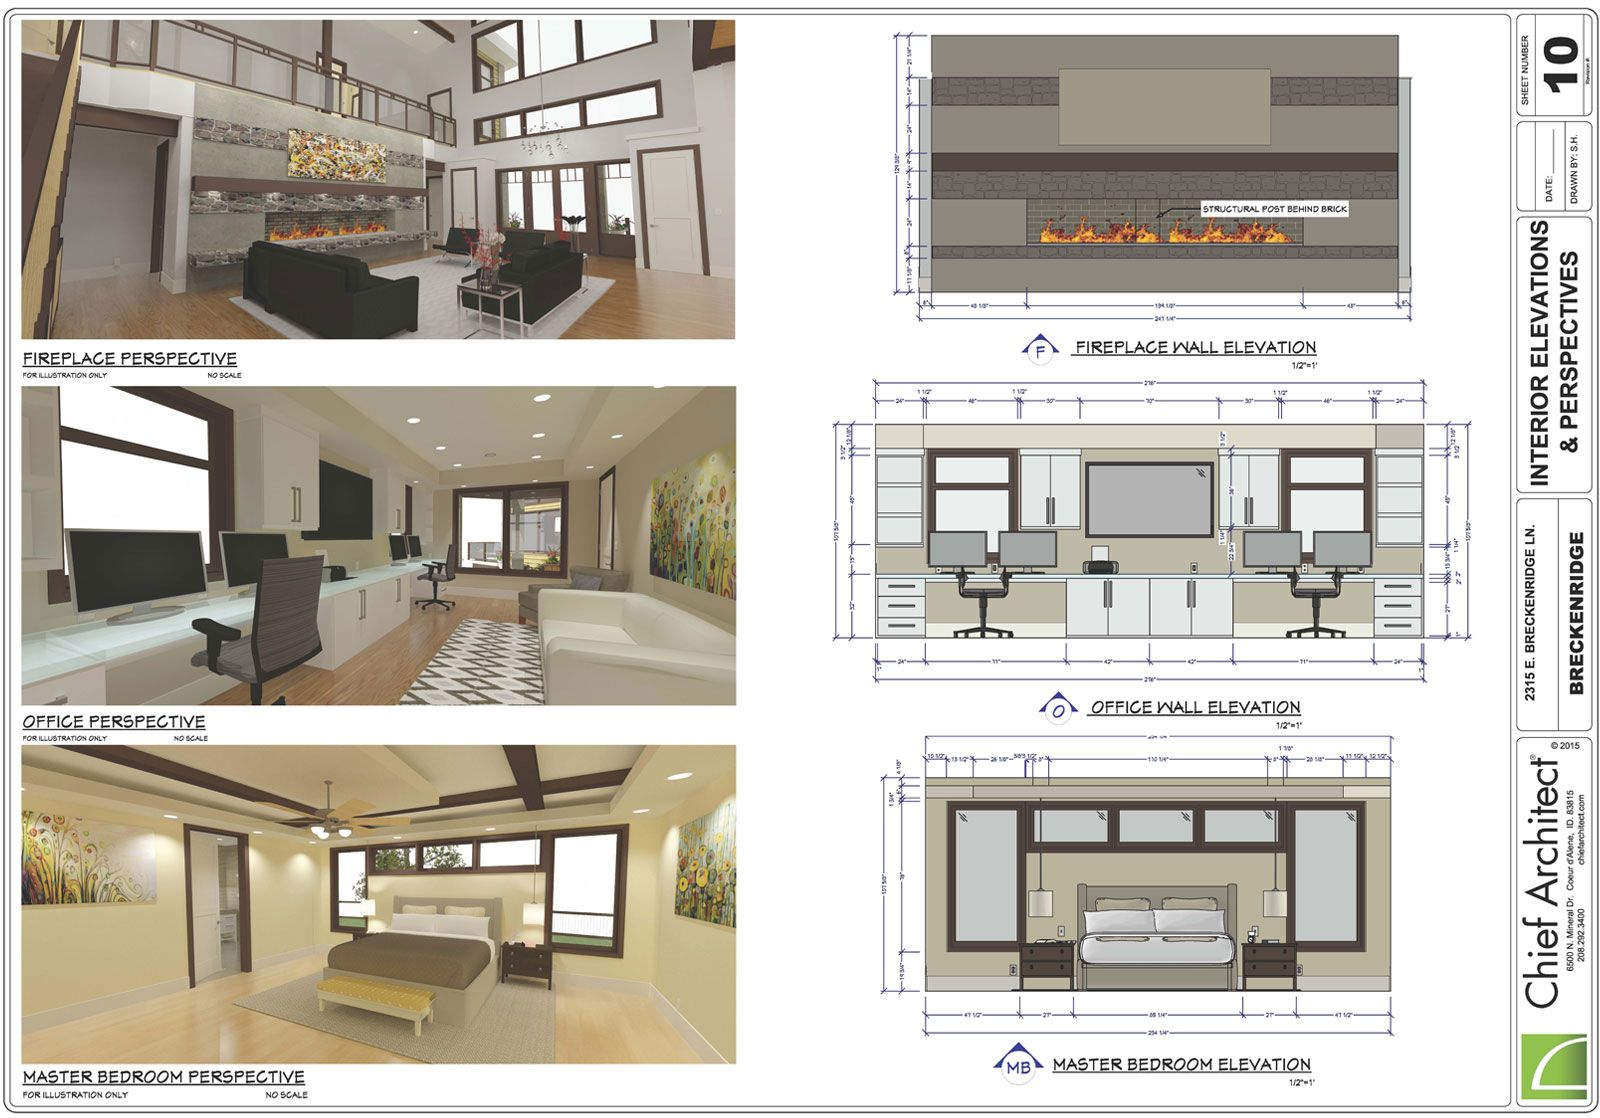 Interior Design Layout With Wall Elevations And Dimensions With